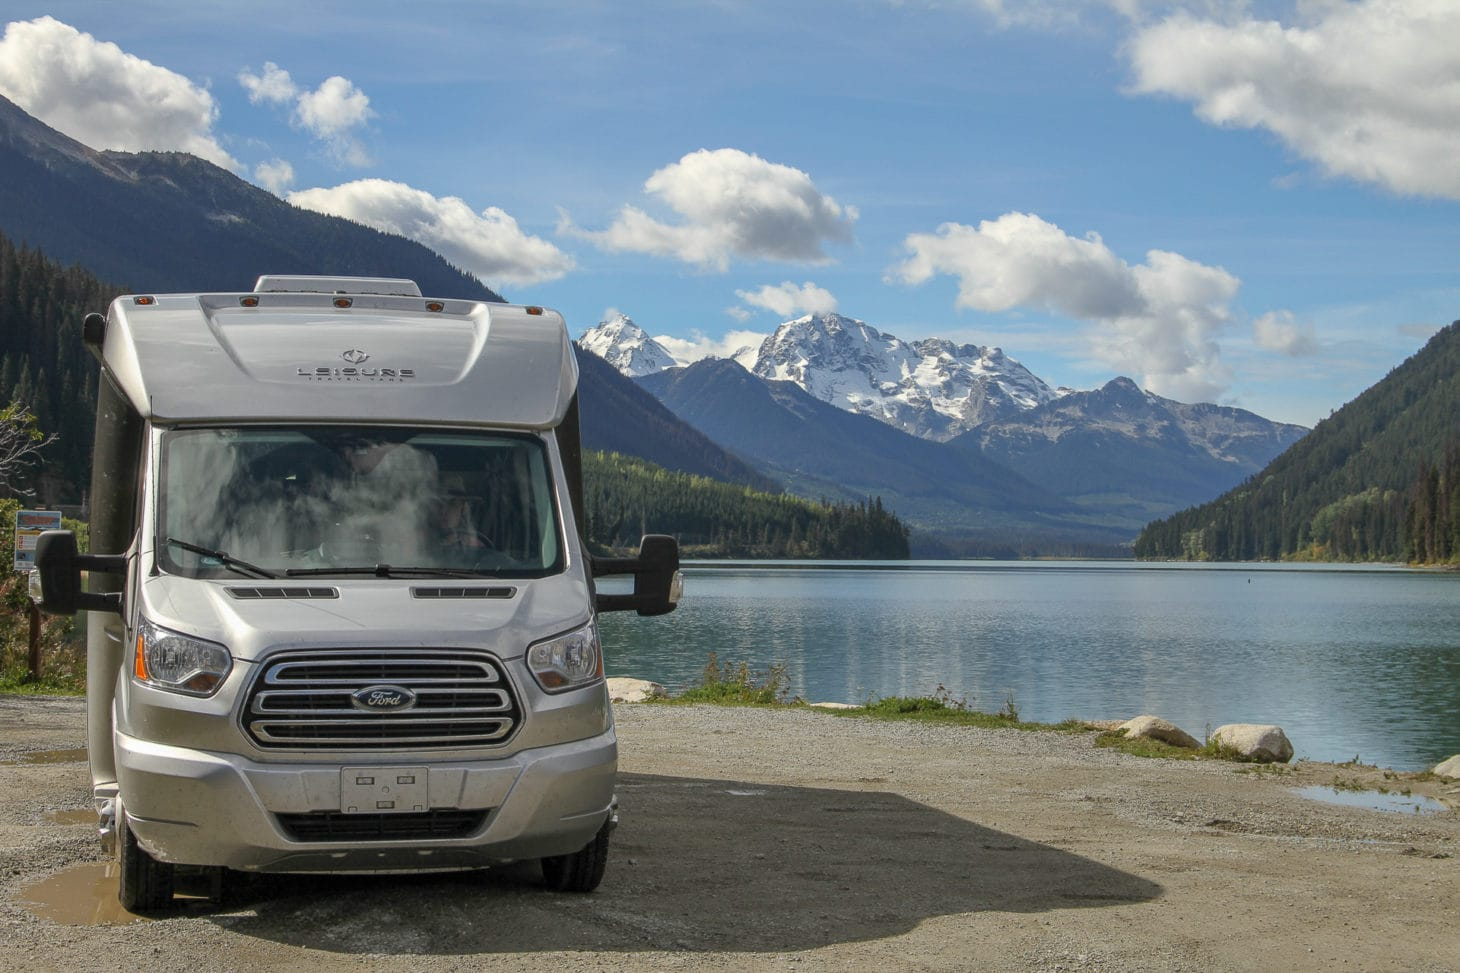 Motorhome parked next to lake with mountain backdrop